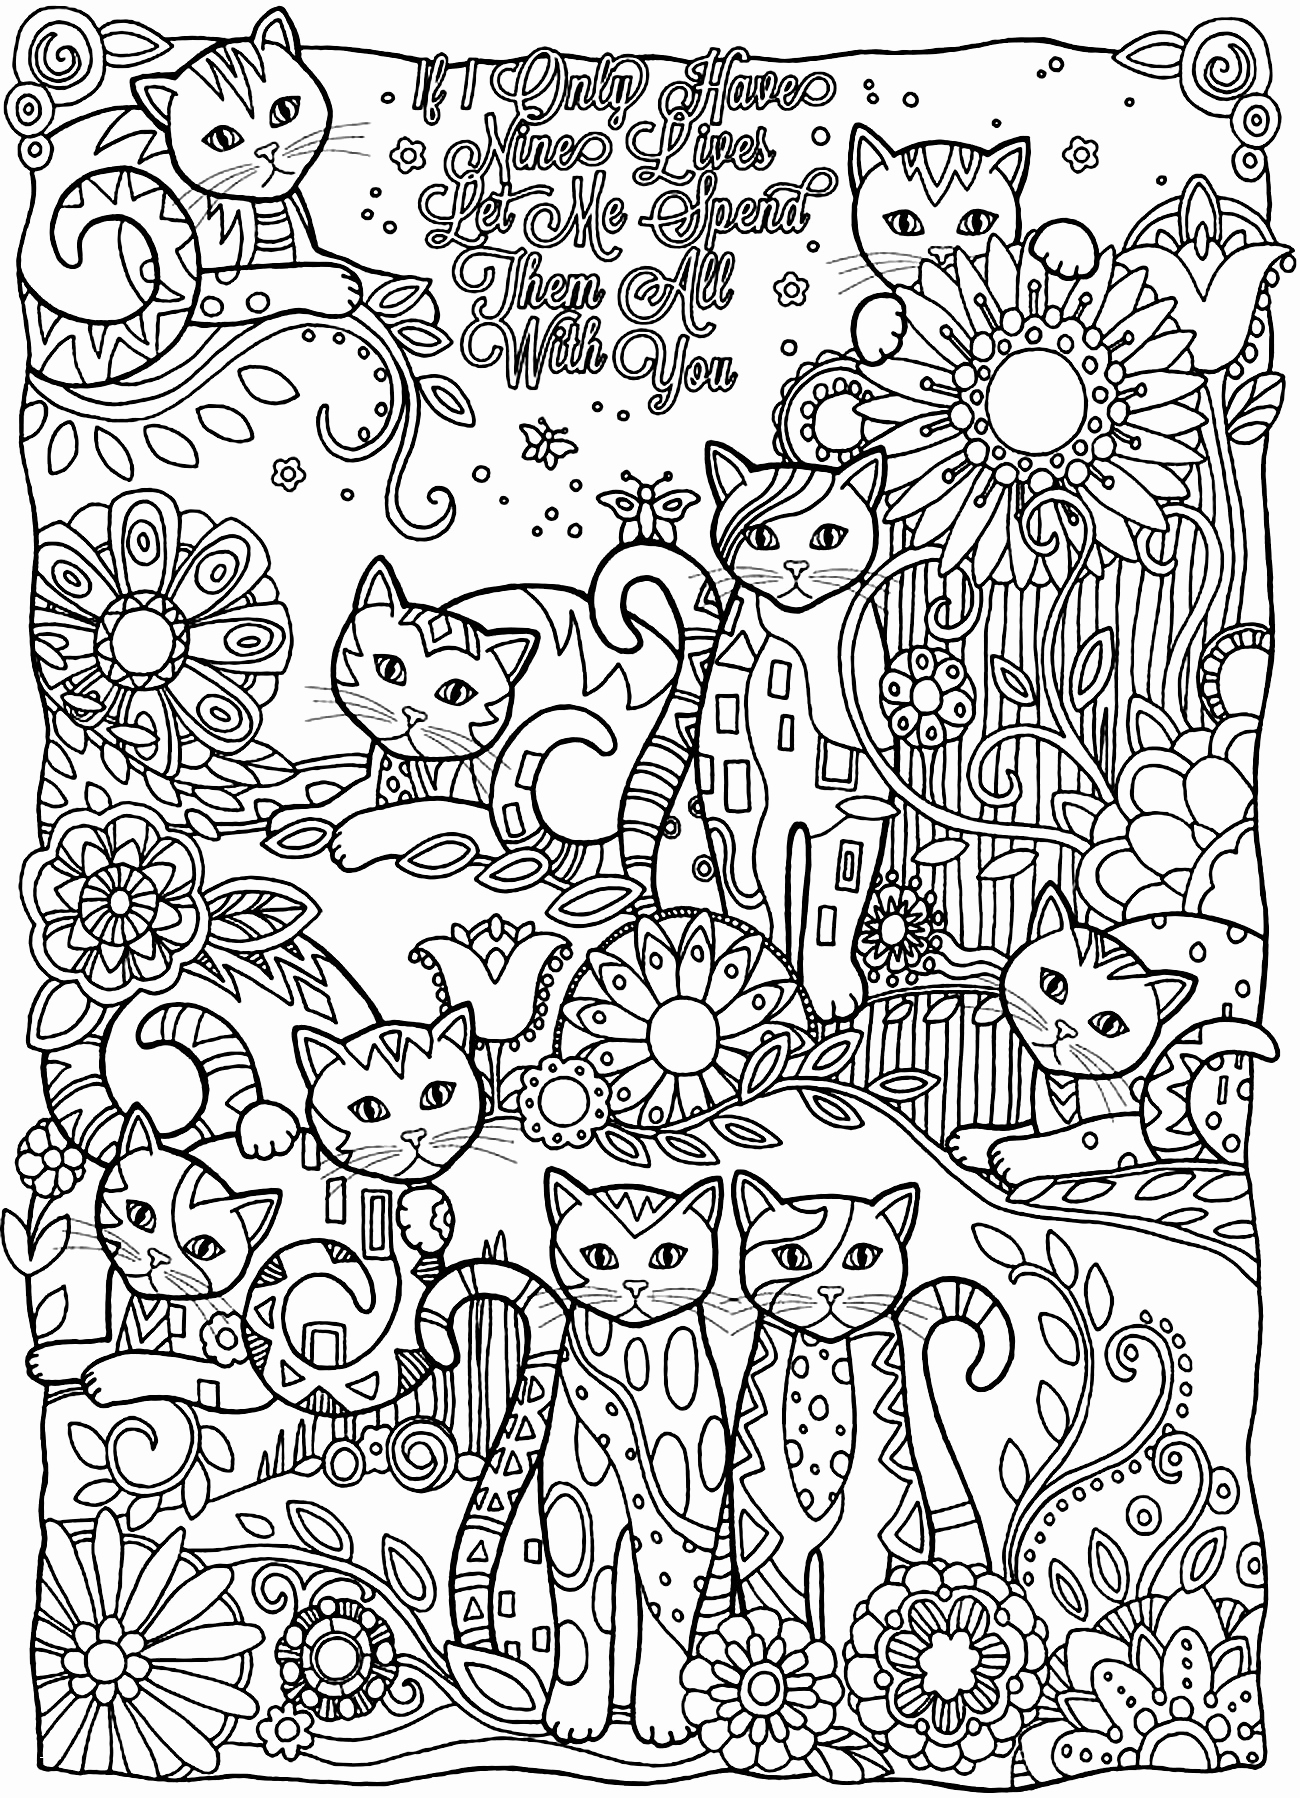 coloring printable worksheets 29 kindness coloring pages printable download coloring worksheets printable coloring